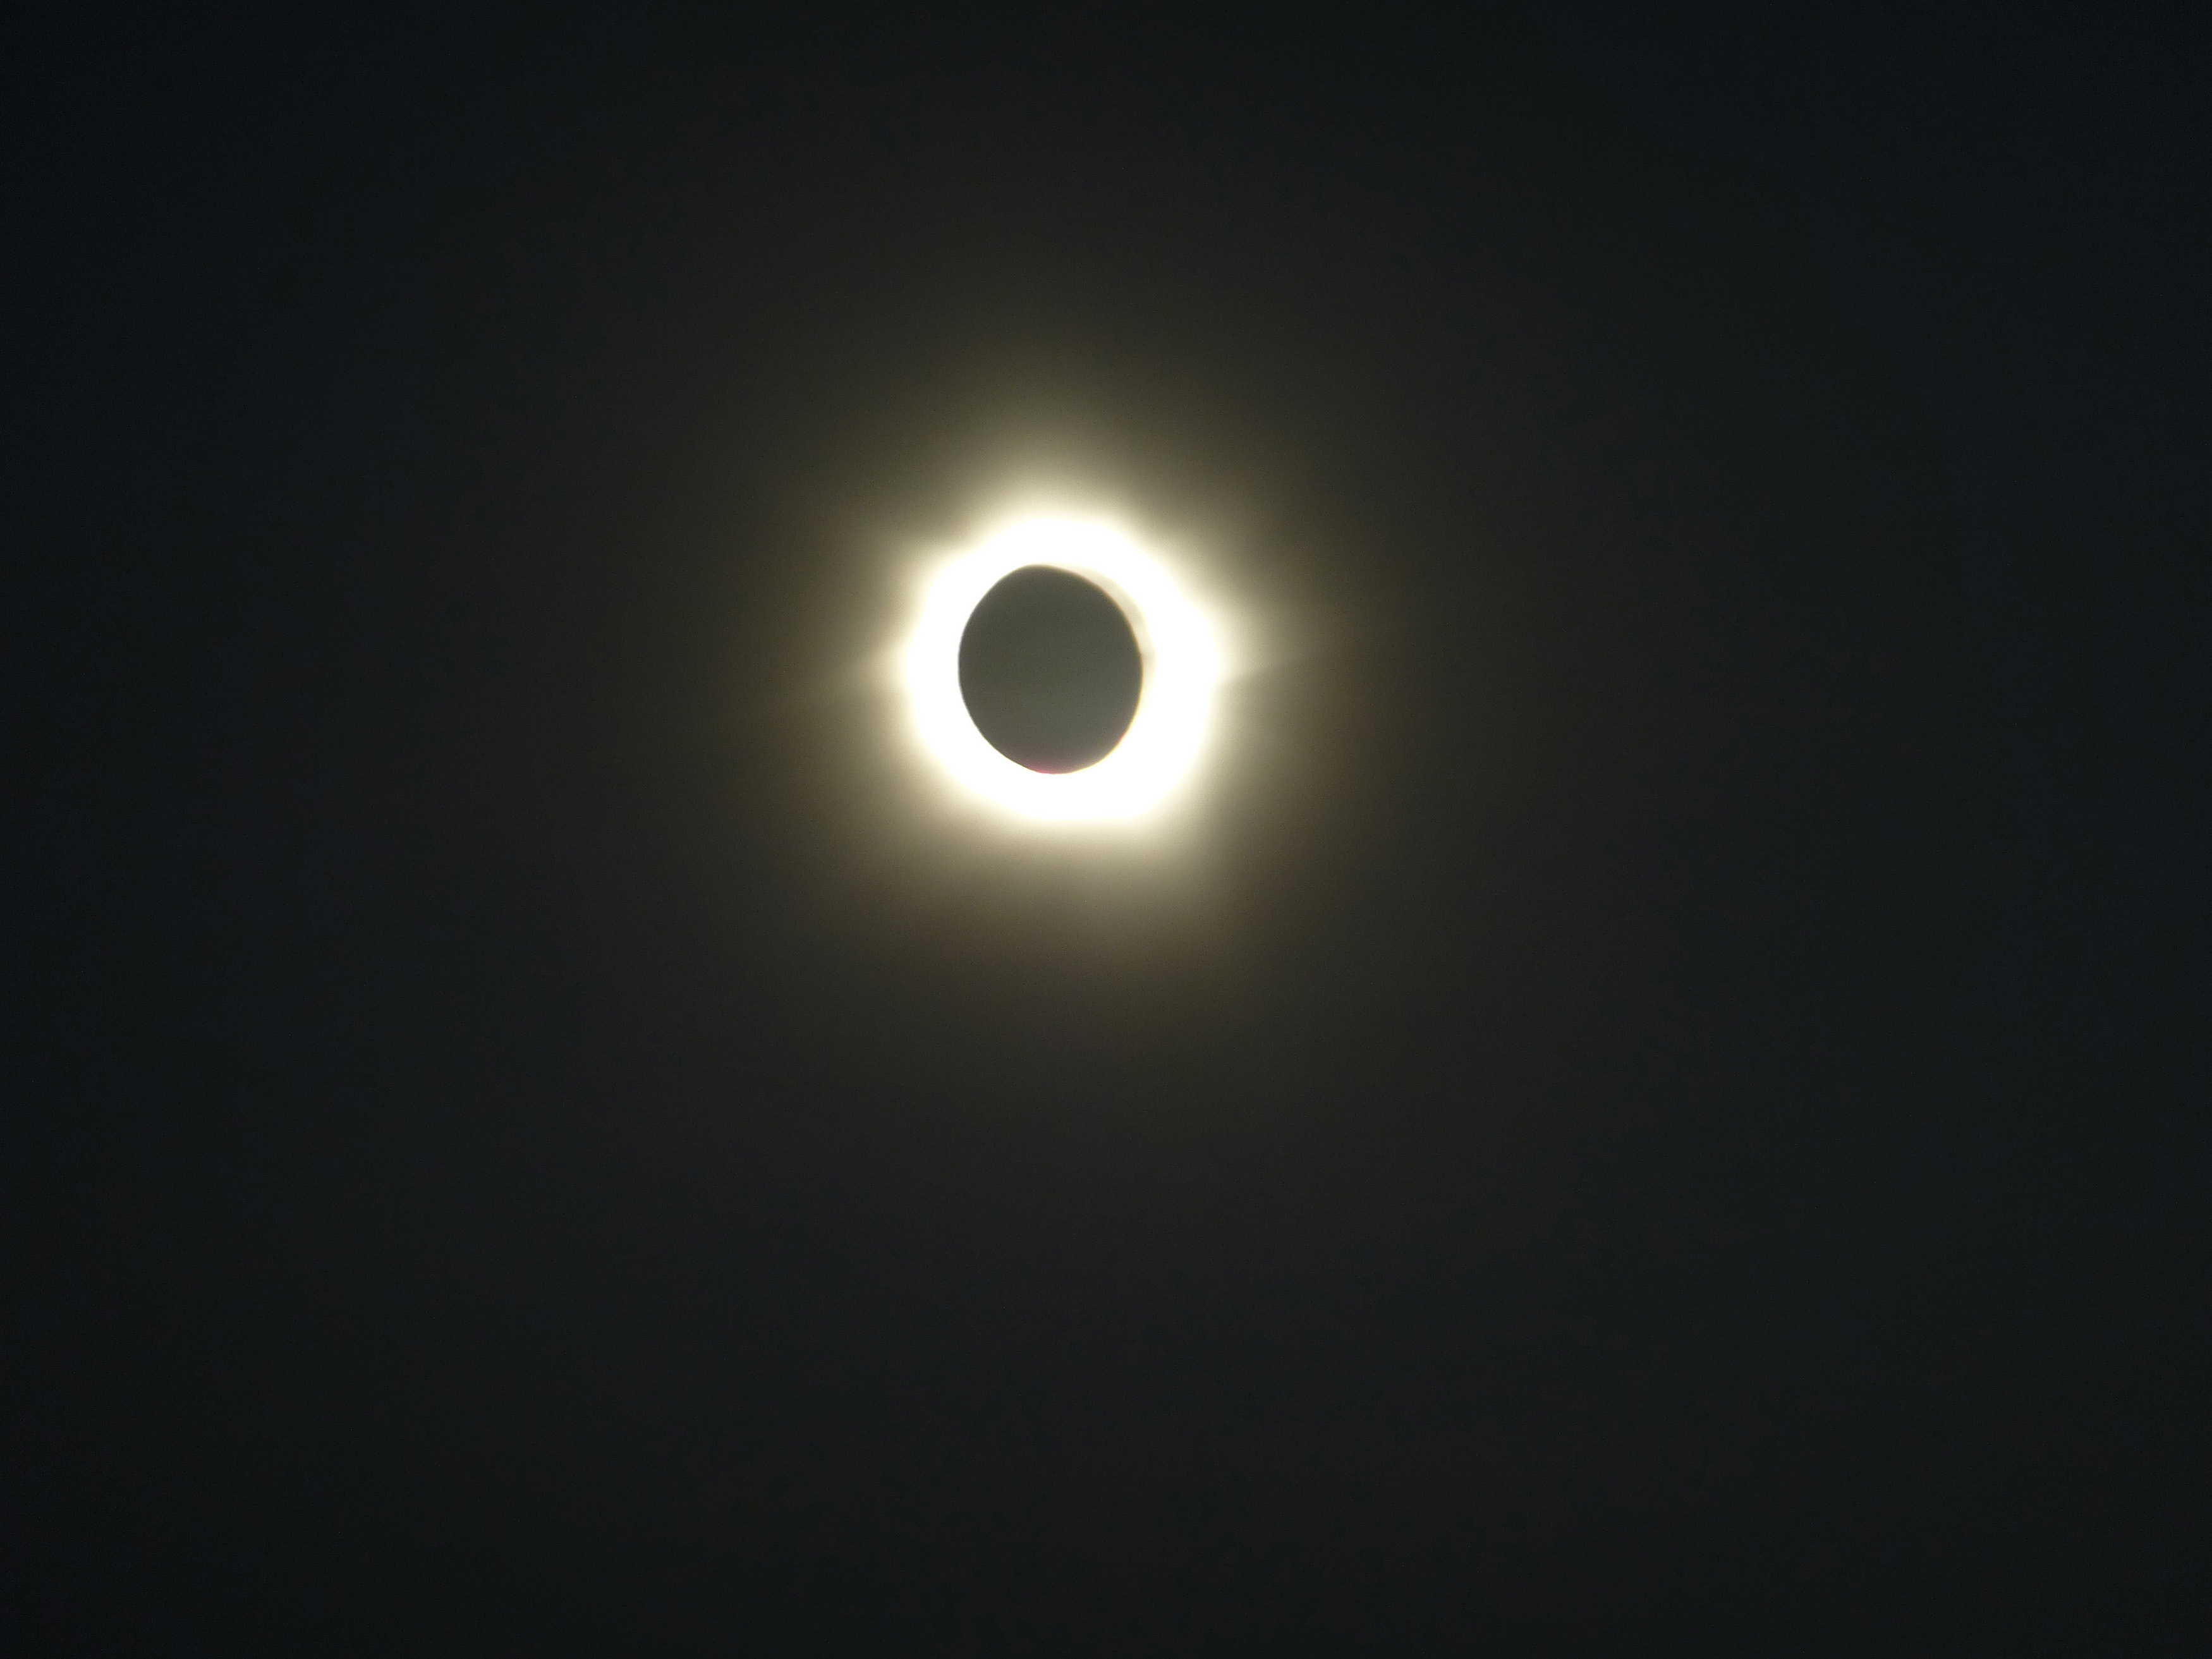 Solar eclipse in a darkened sky with the corona of the sun shining out around the moon as a bright halo